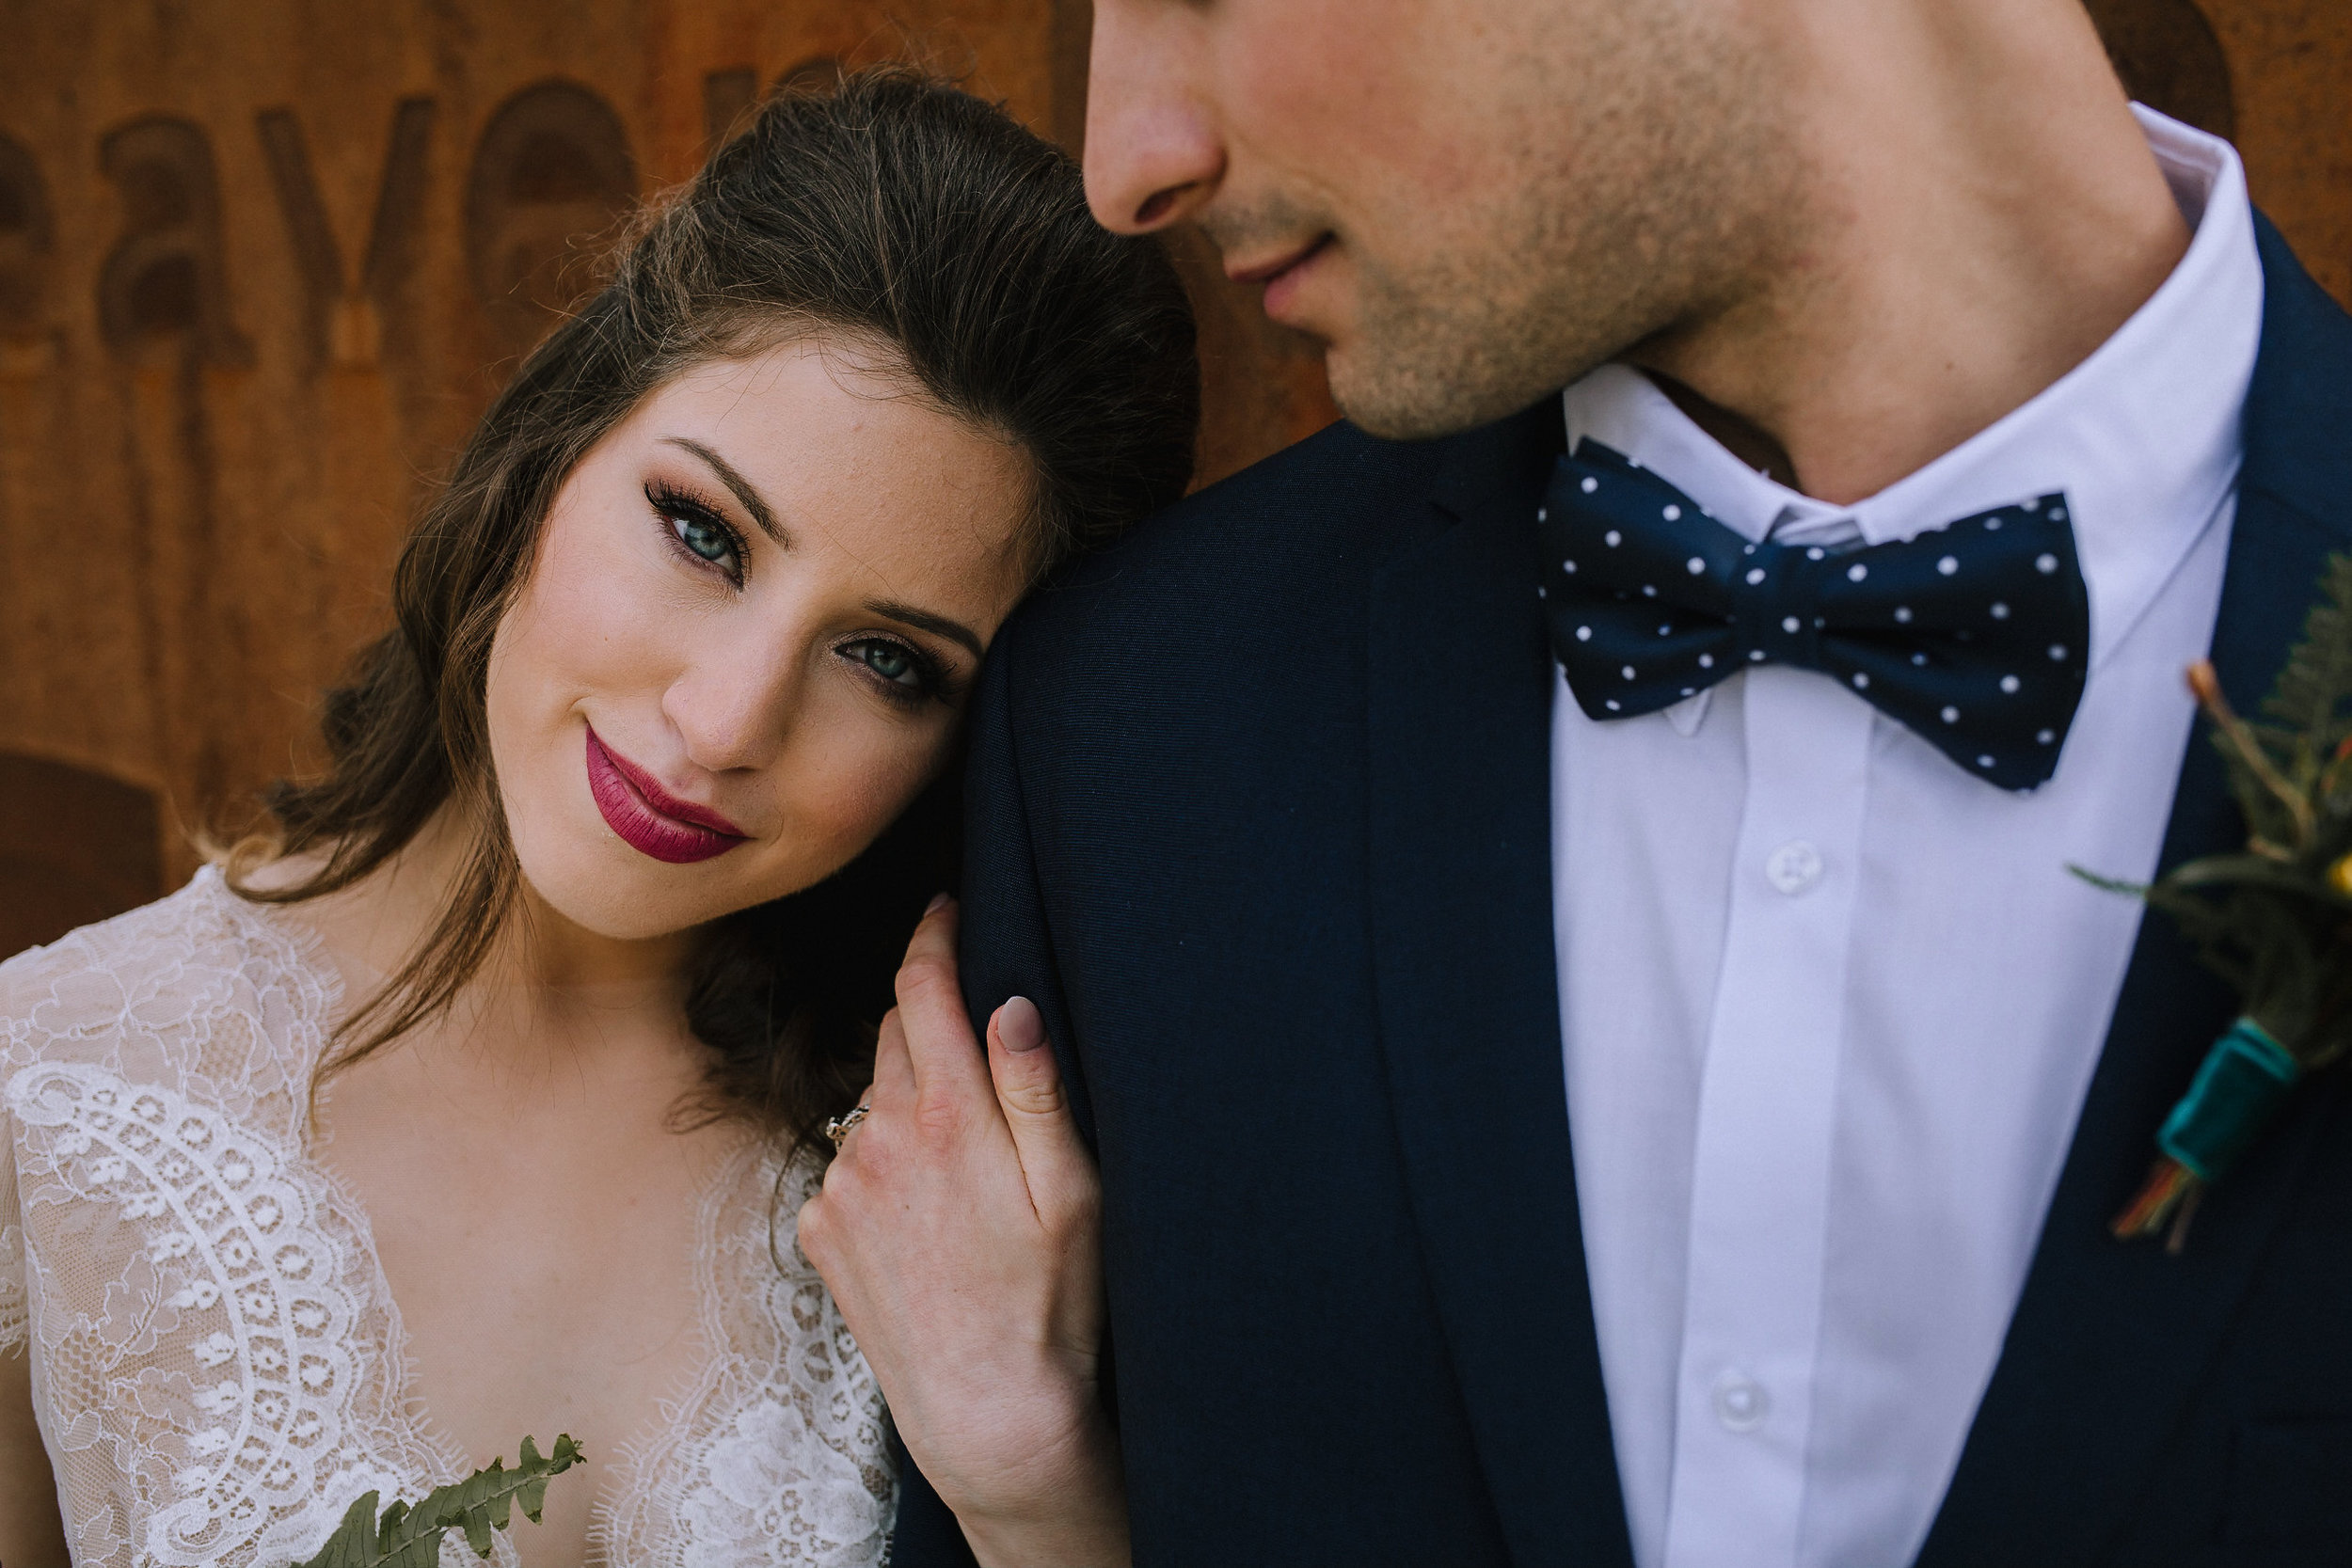 Bohemian wedding at Chatham University, Eden Hall Farm designed by Exhale Events. Bride's look from Blanc de Blanc Bridal, Melissa Gown by Divine Atelier. Groom's suit from H&M. Hair & makeup by JL Makeup Studio.